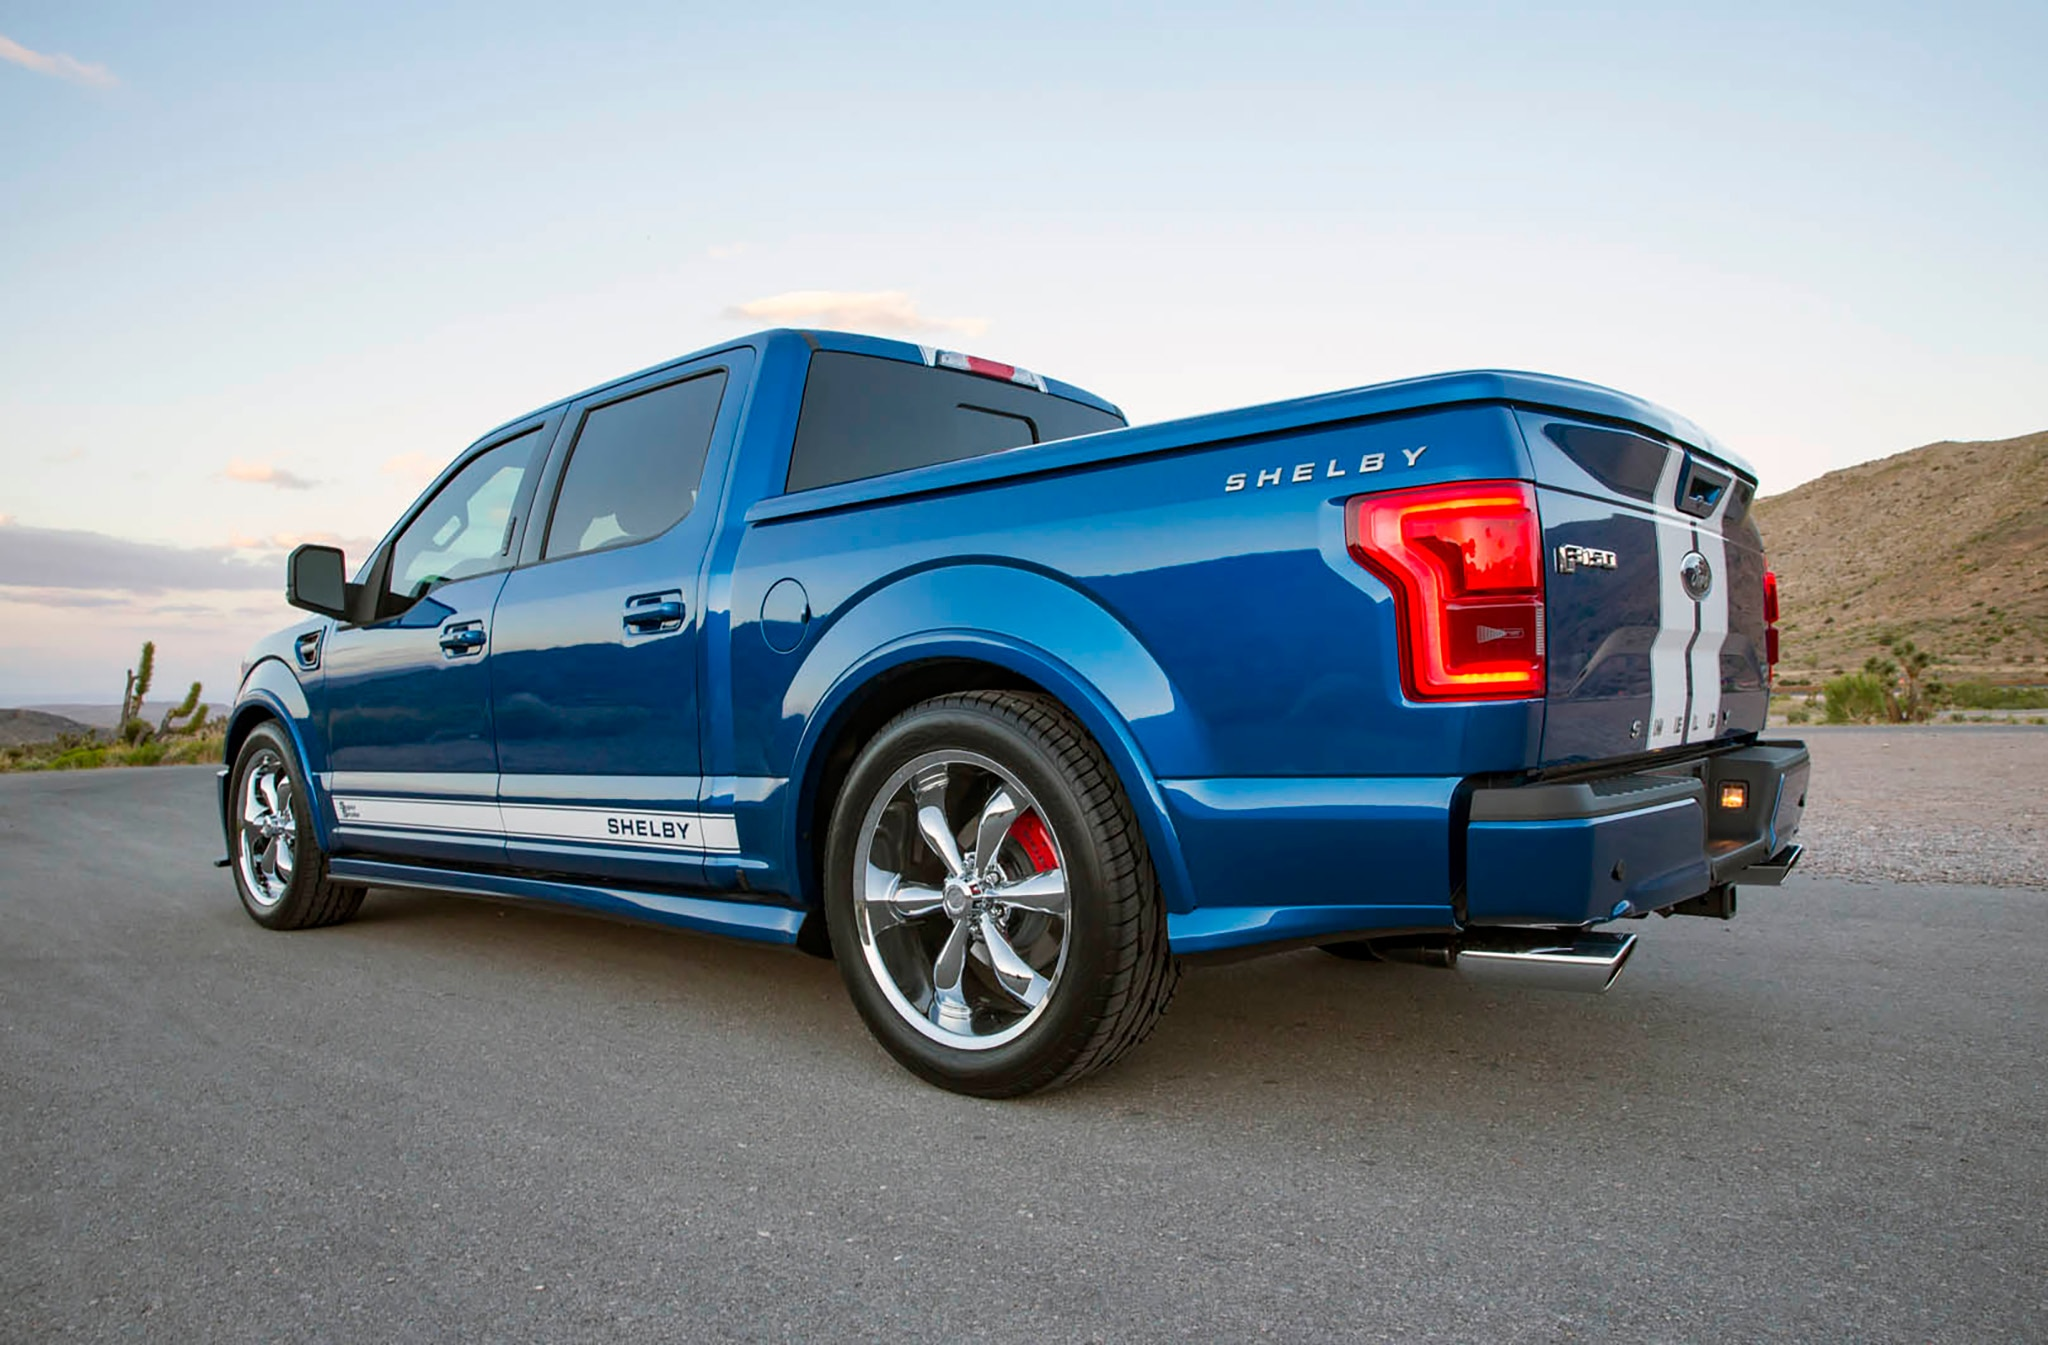 Super Snake 2017 >> Shelby F-150 Super Snake Returns for 2017 | Automobile Magazine